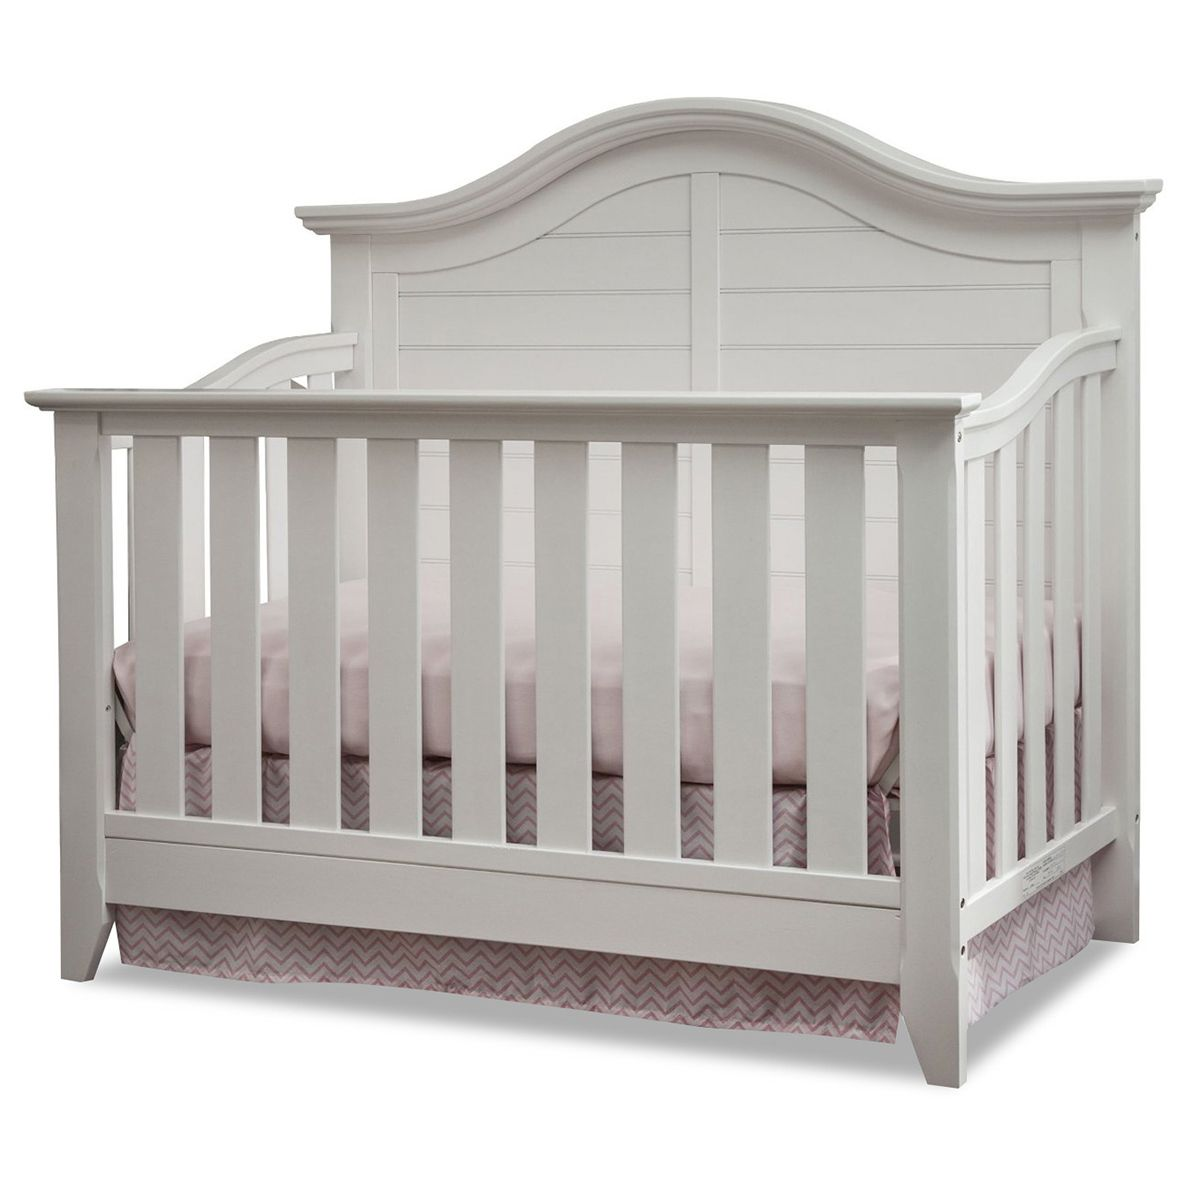 Merveilleux Ivory Baby Furniture   Best Interior Paint Brand Check More At Http://www